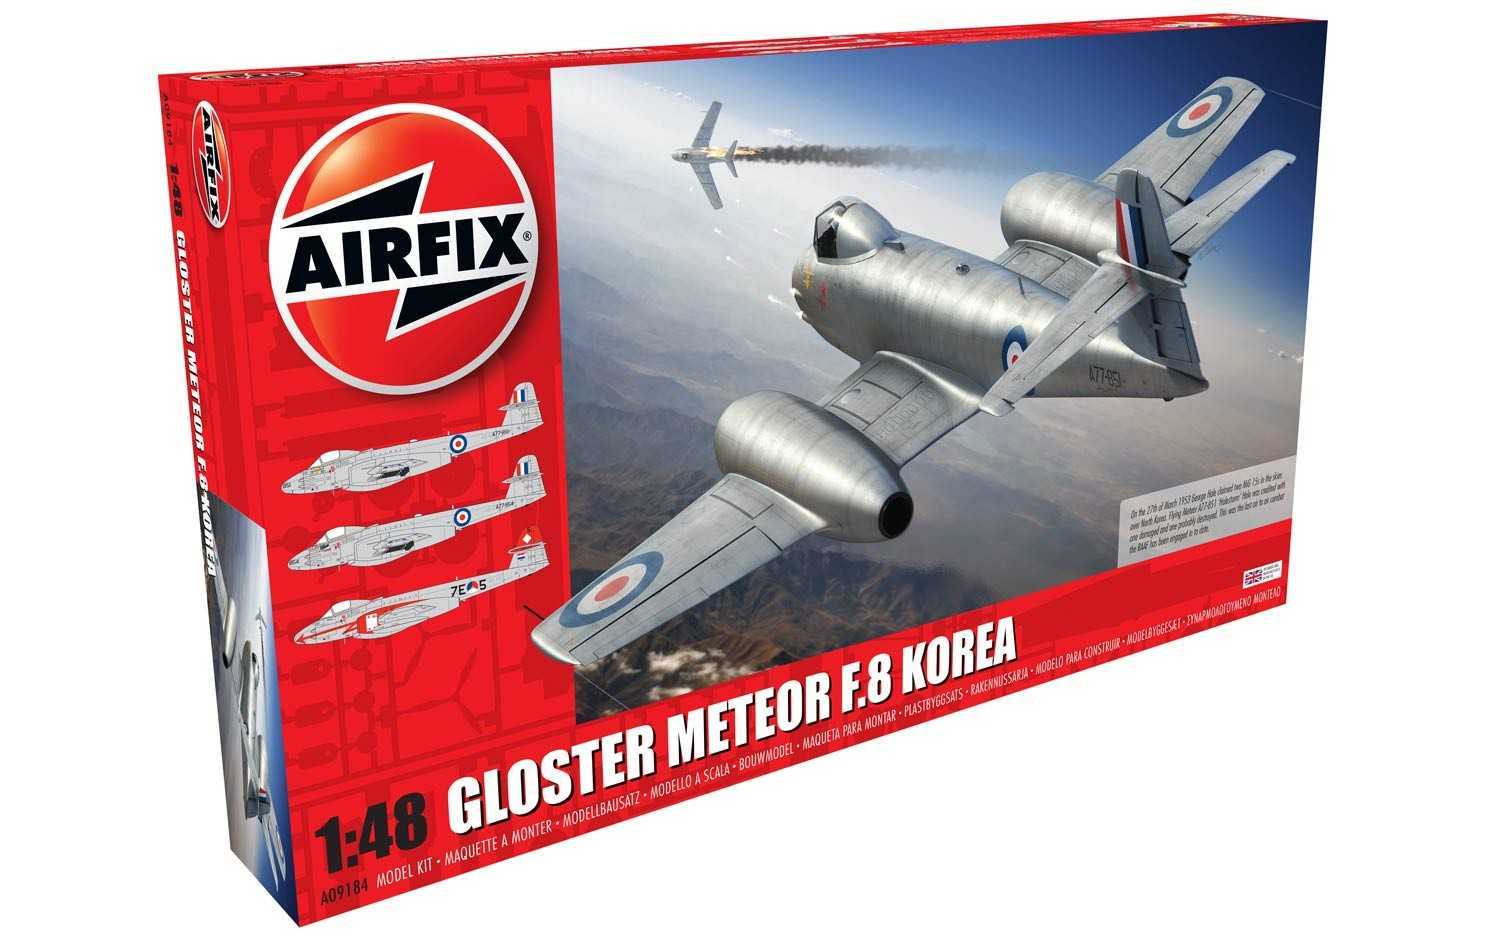 1:48 Gloster Meteor F.8, Korean War